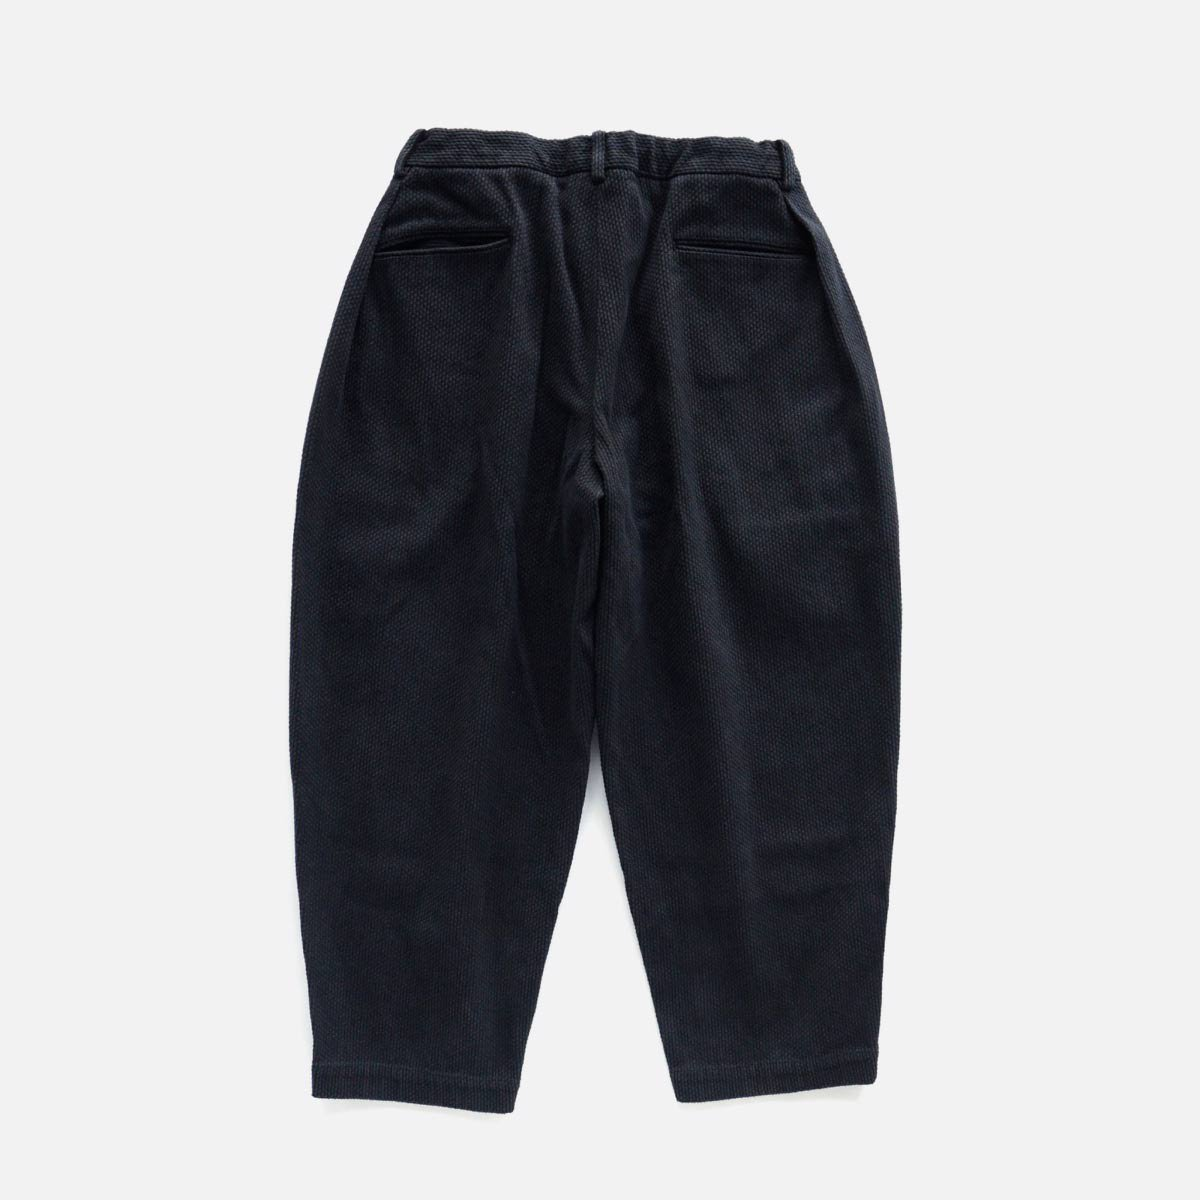 COLINA Sashiko W-tuck Wide Pants  (Black)2